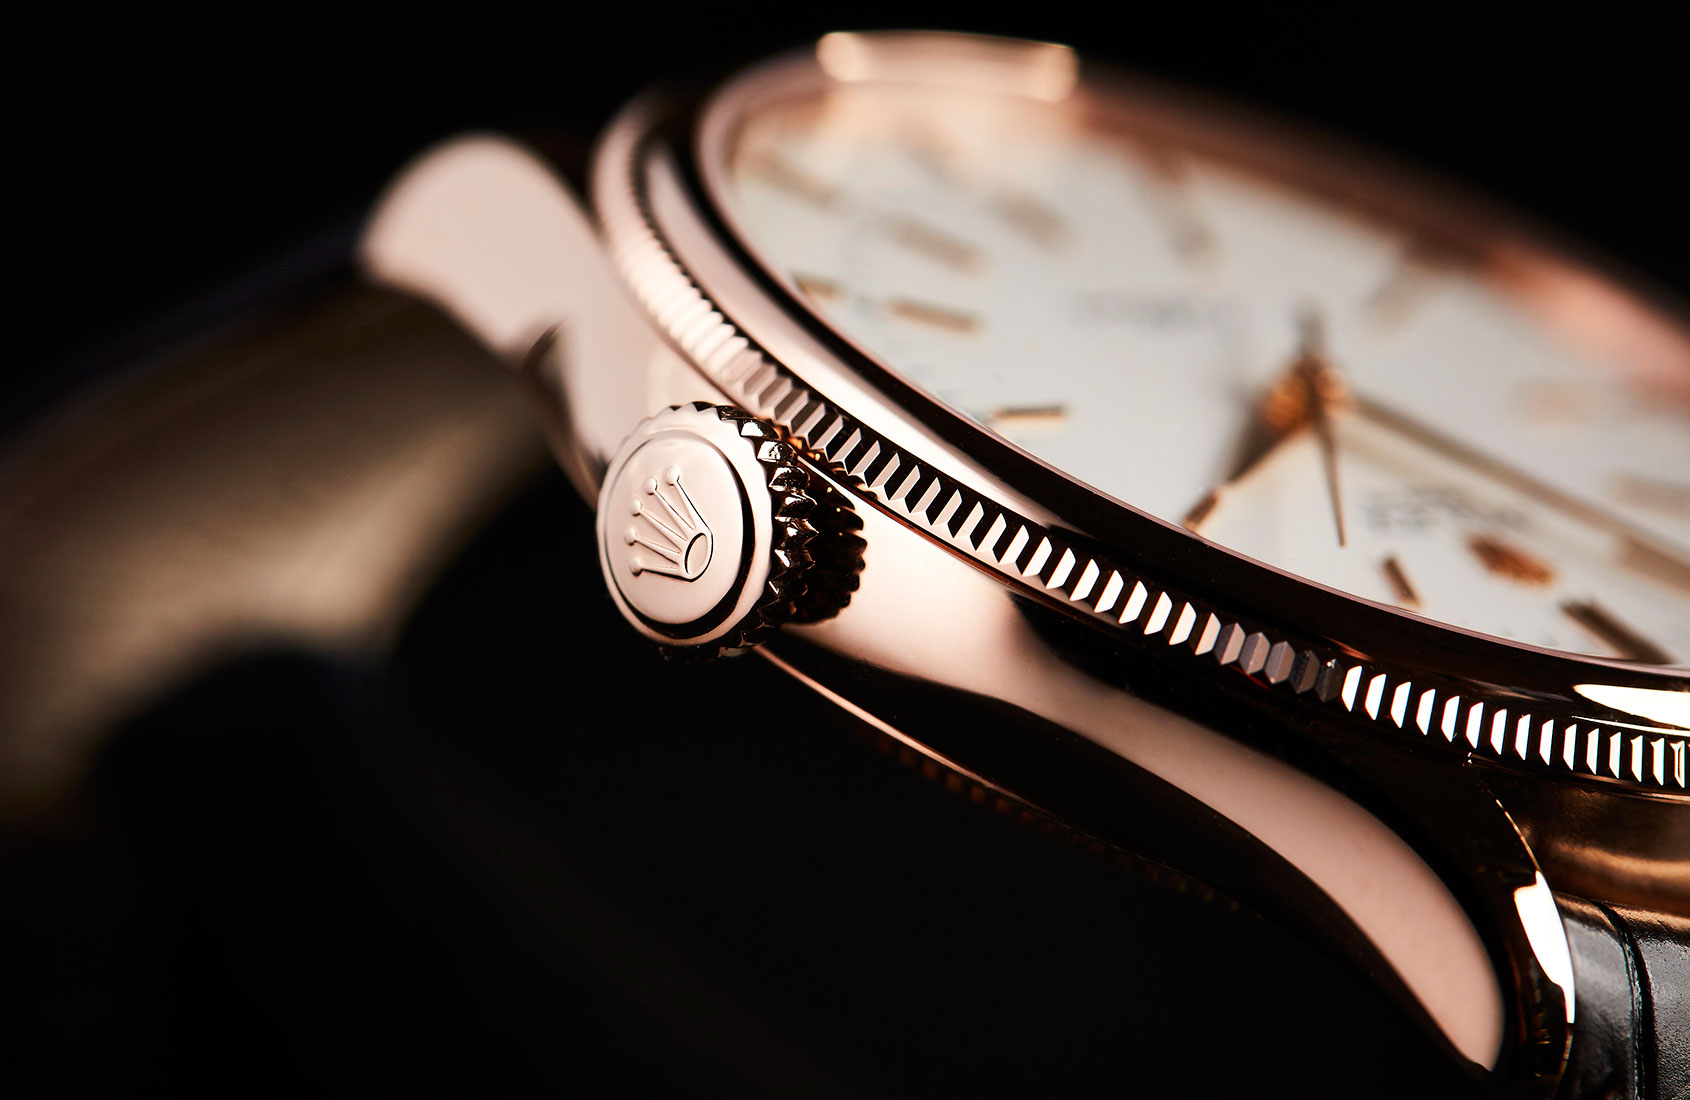 MY WEEK WITH: The Rolex Cellini Time